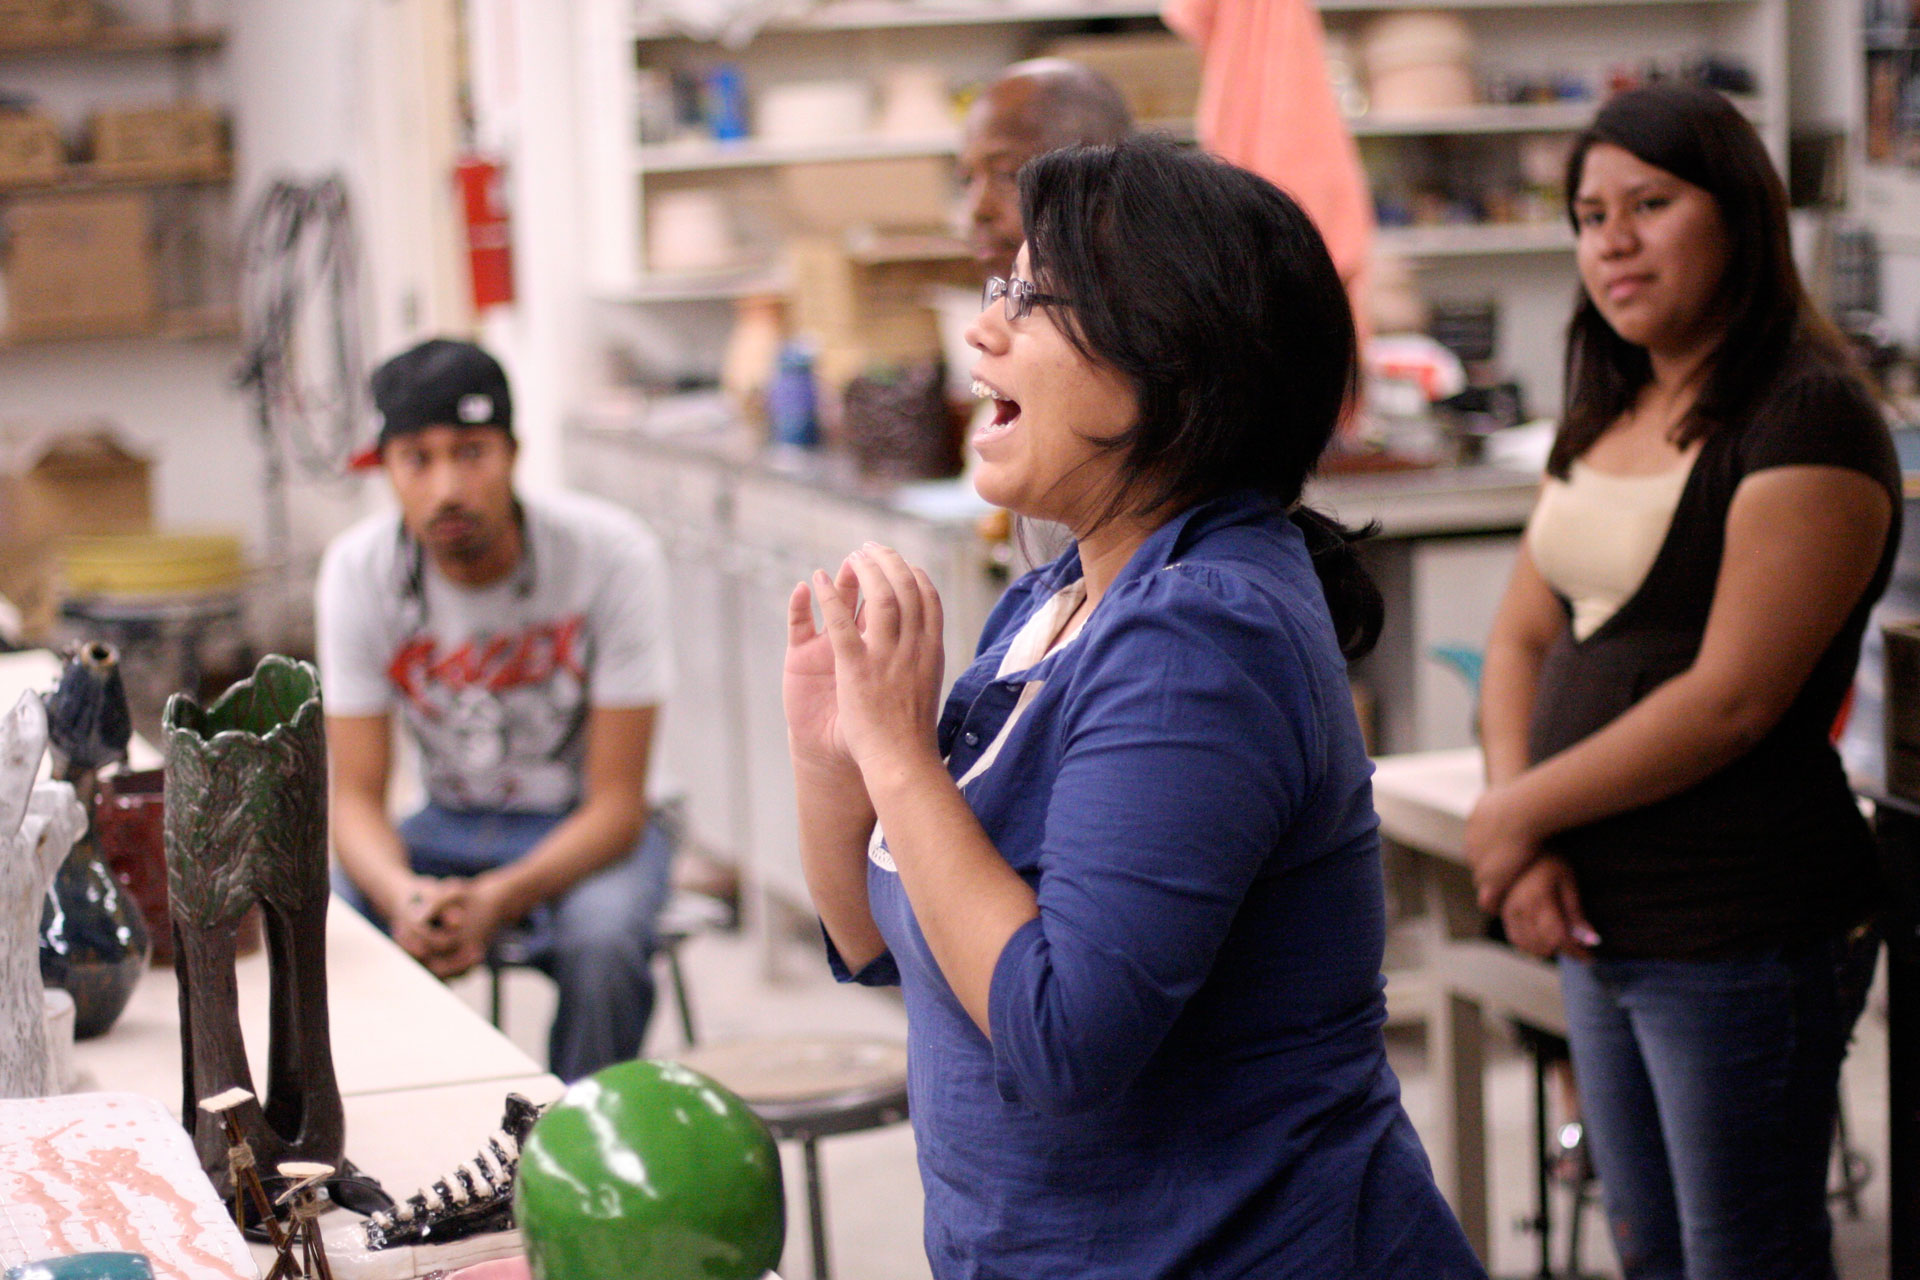 Students participate in a ceramics class at CSU Dominguez Hills.